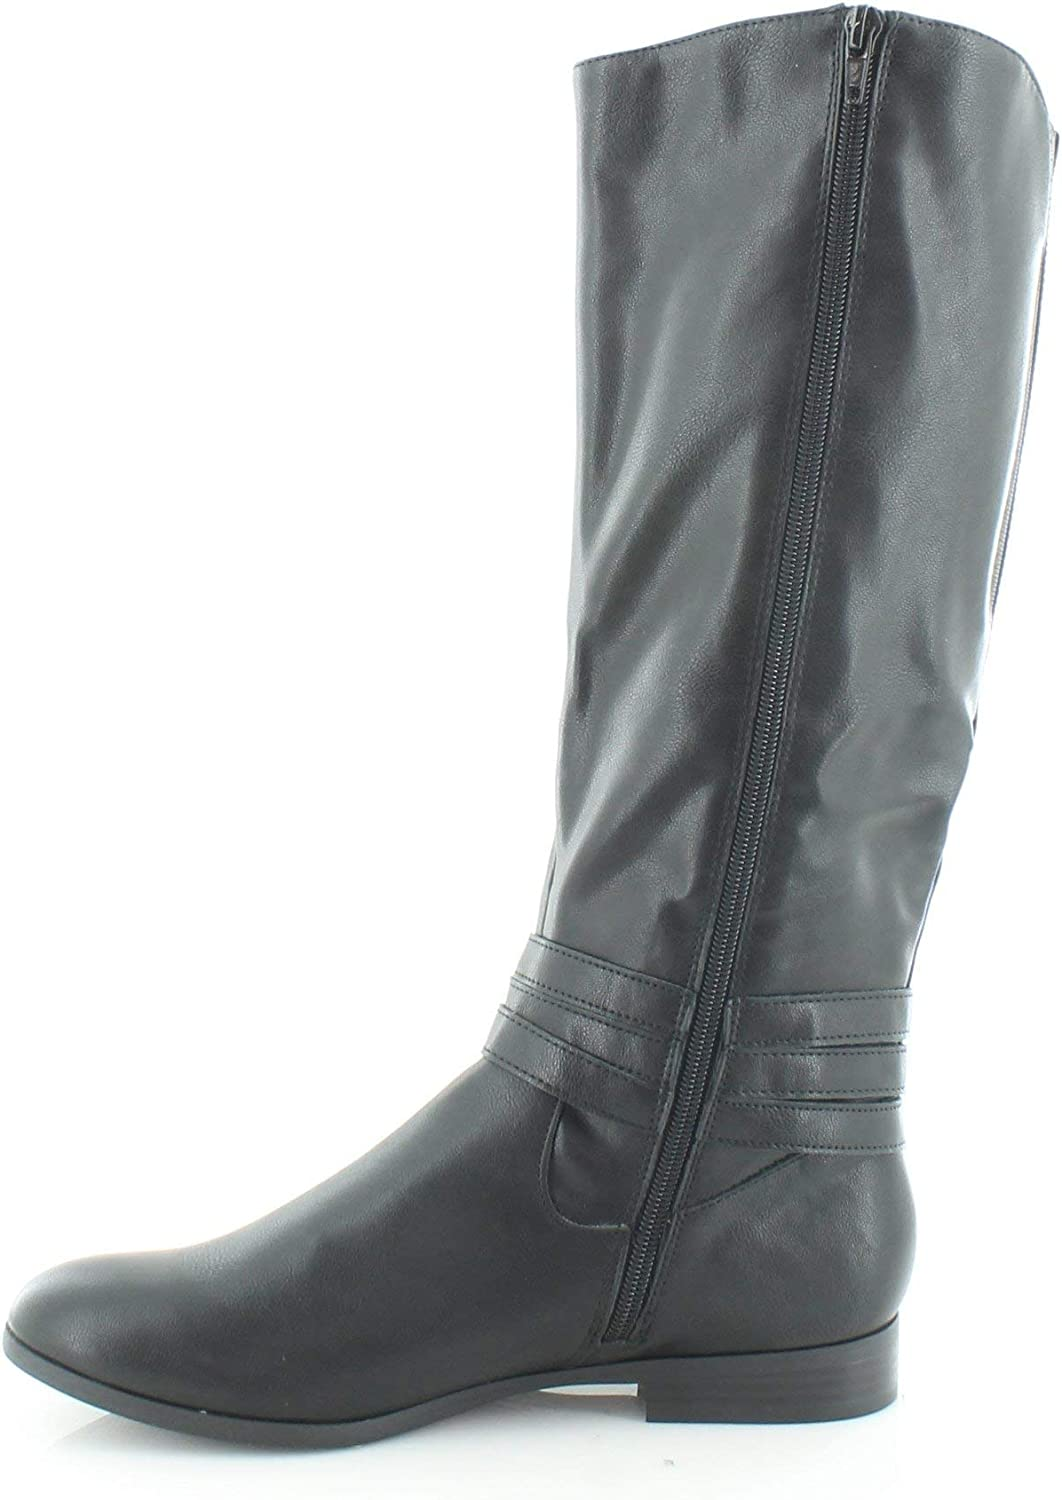 Style & Co. Womens Keppur Closed Toe Over Knee Riding, Dark Grey, Size 11.0